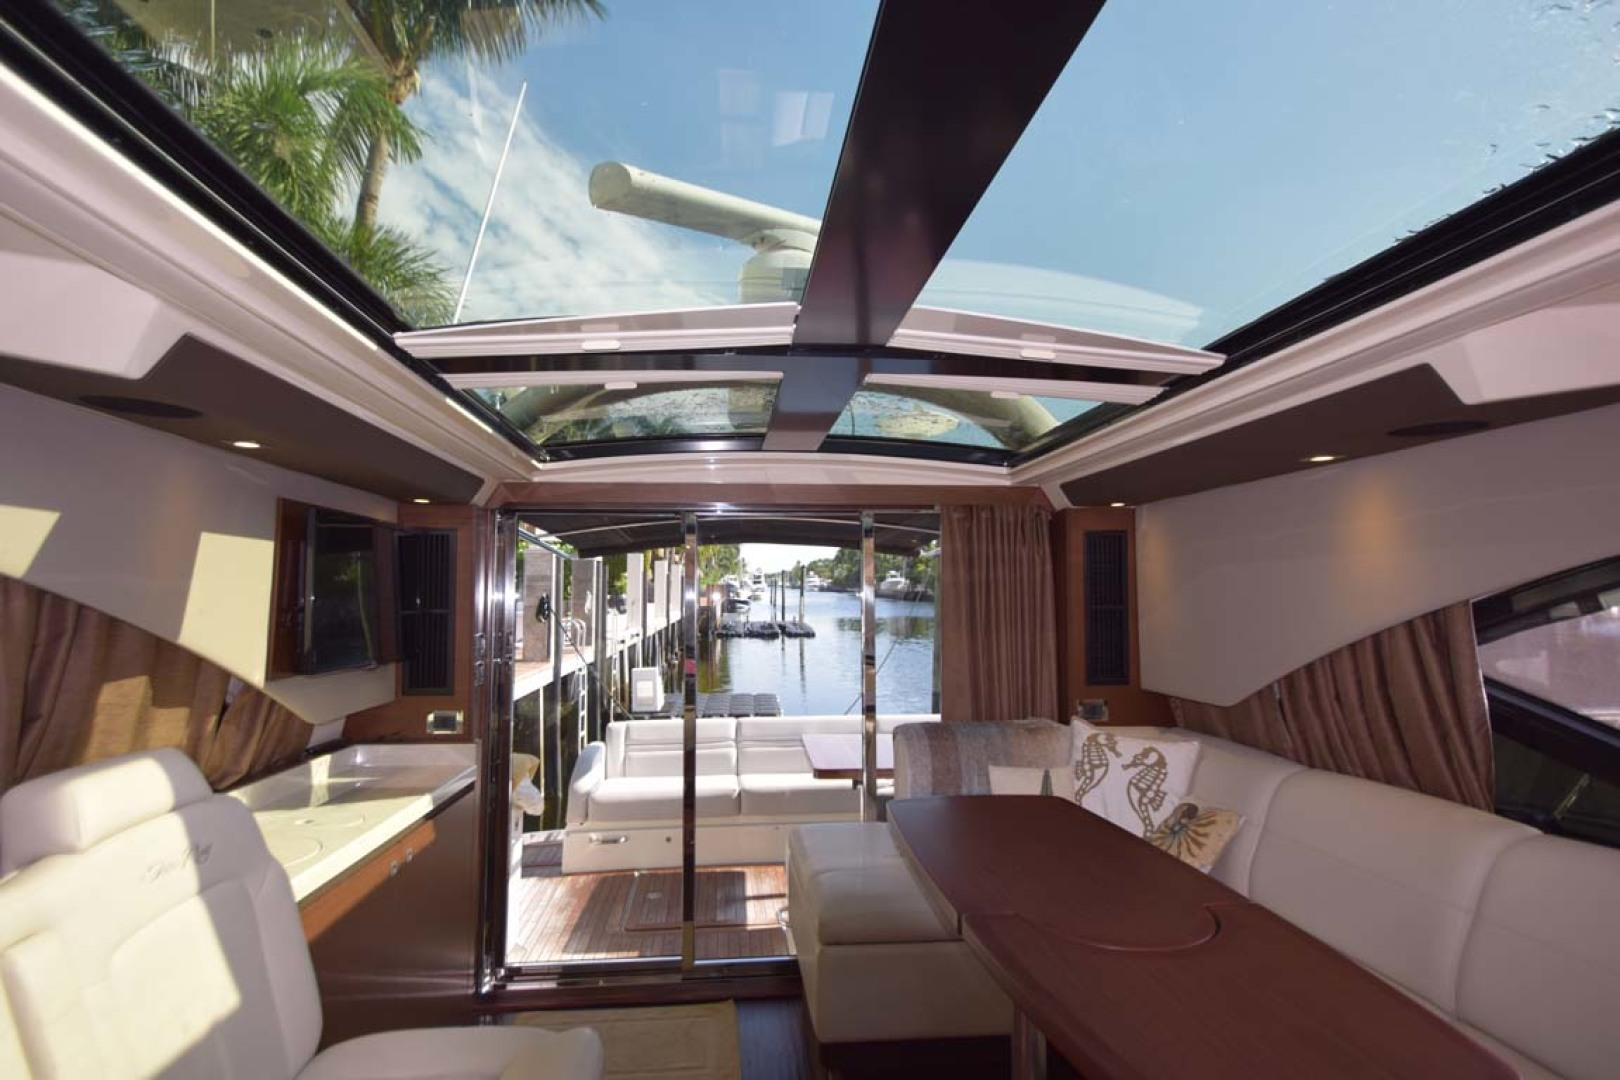 Sea Ray-510 Sundancer 2015 -Ft Lauderdale-Florida-United States-Salon View To Aft Deck With Sun Shades Open-1189922 | Thumbnail